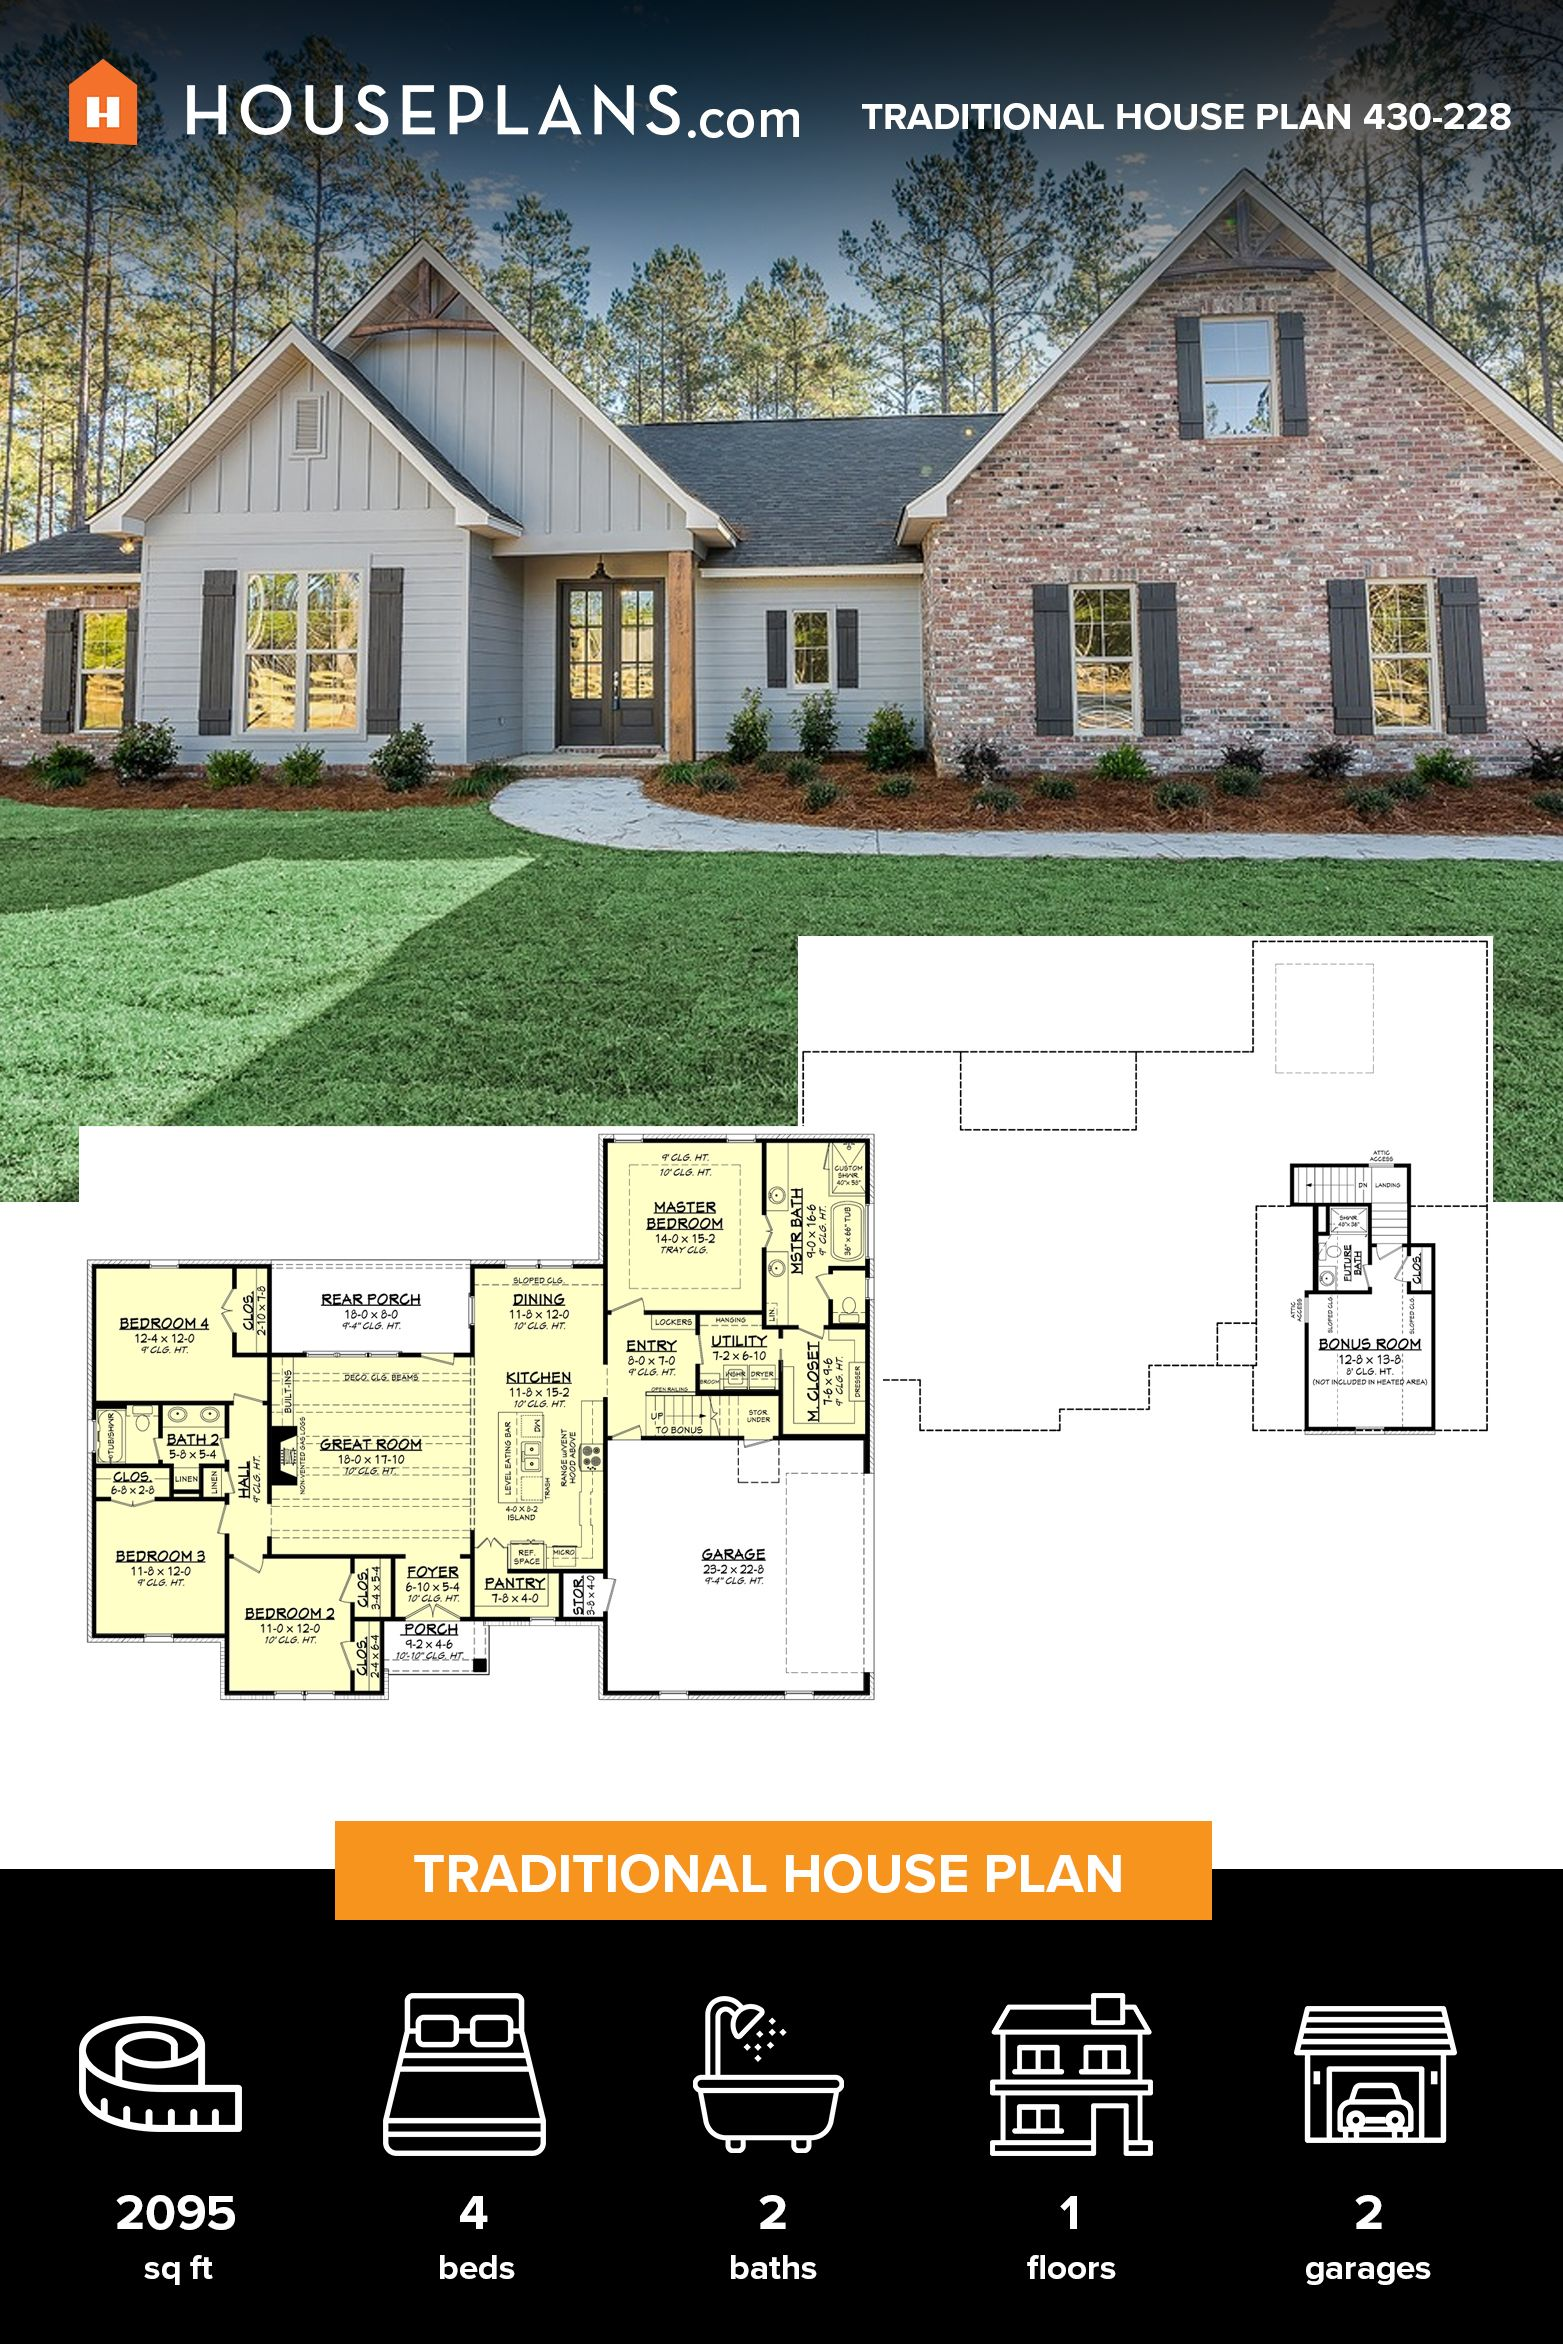 Traditional Style House Plan 4 Beds 2 Baths 2095 Sq Ft Plan 430 228 White House Plans House Blueprints House Plans Farmhouse